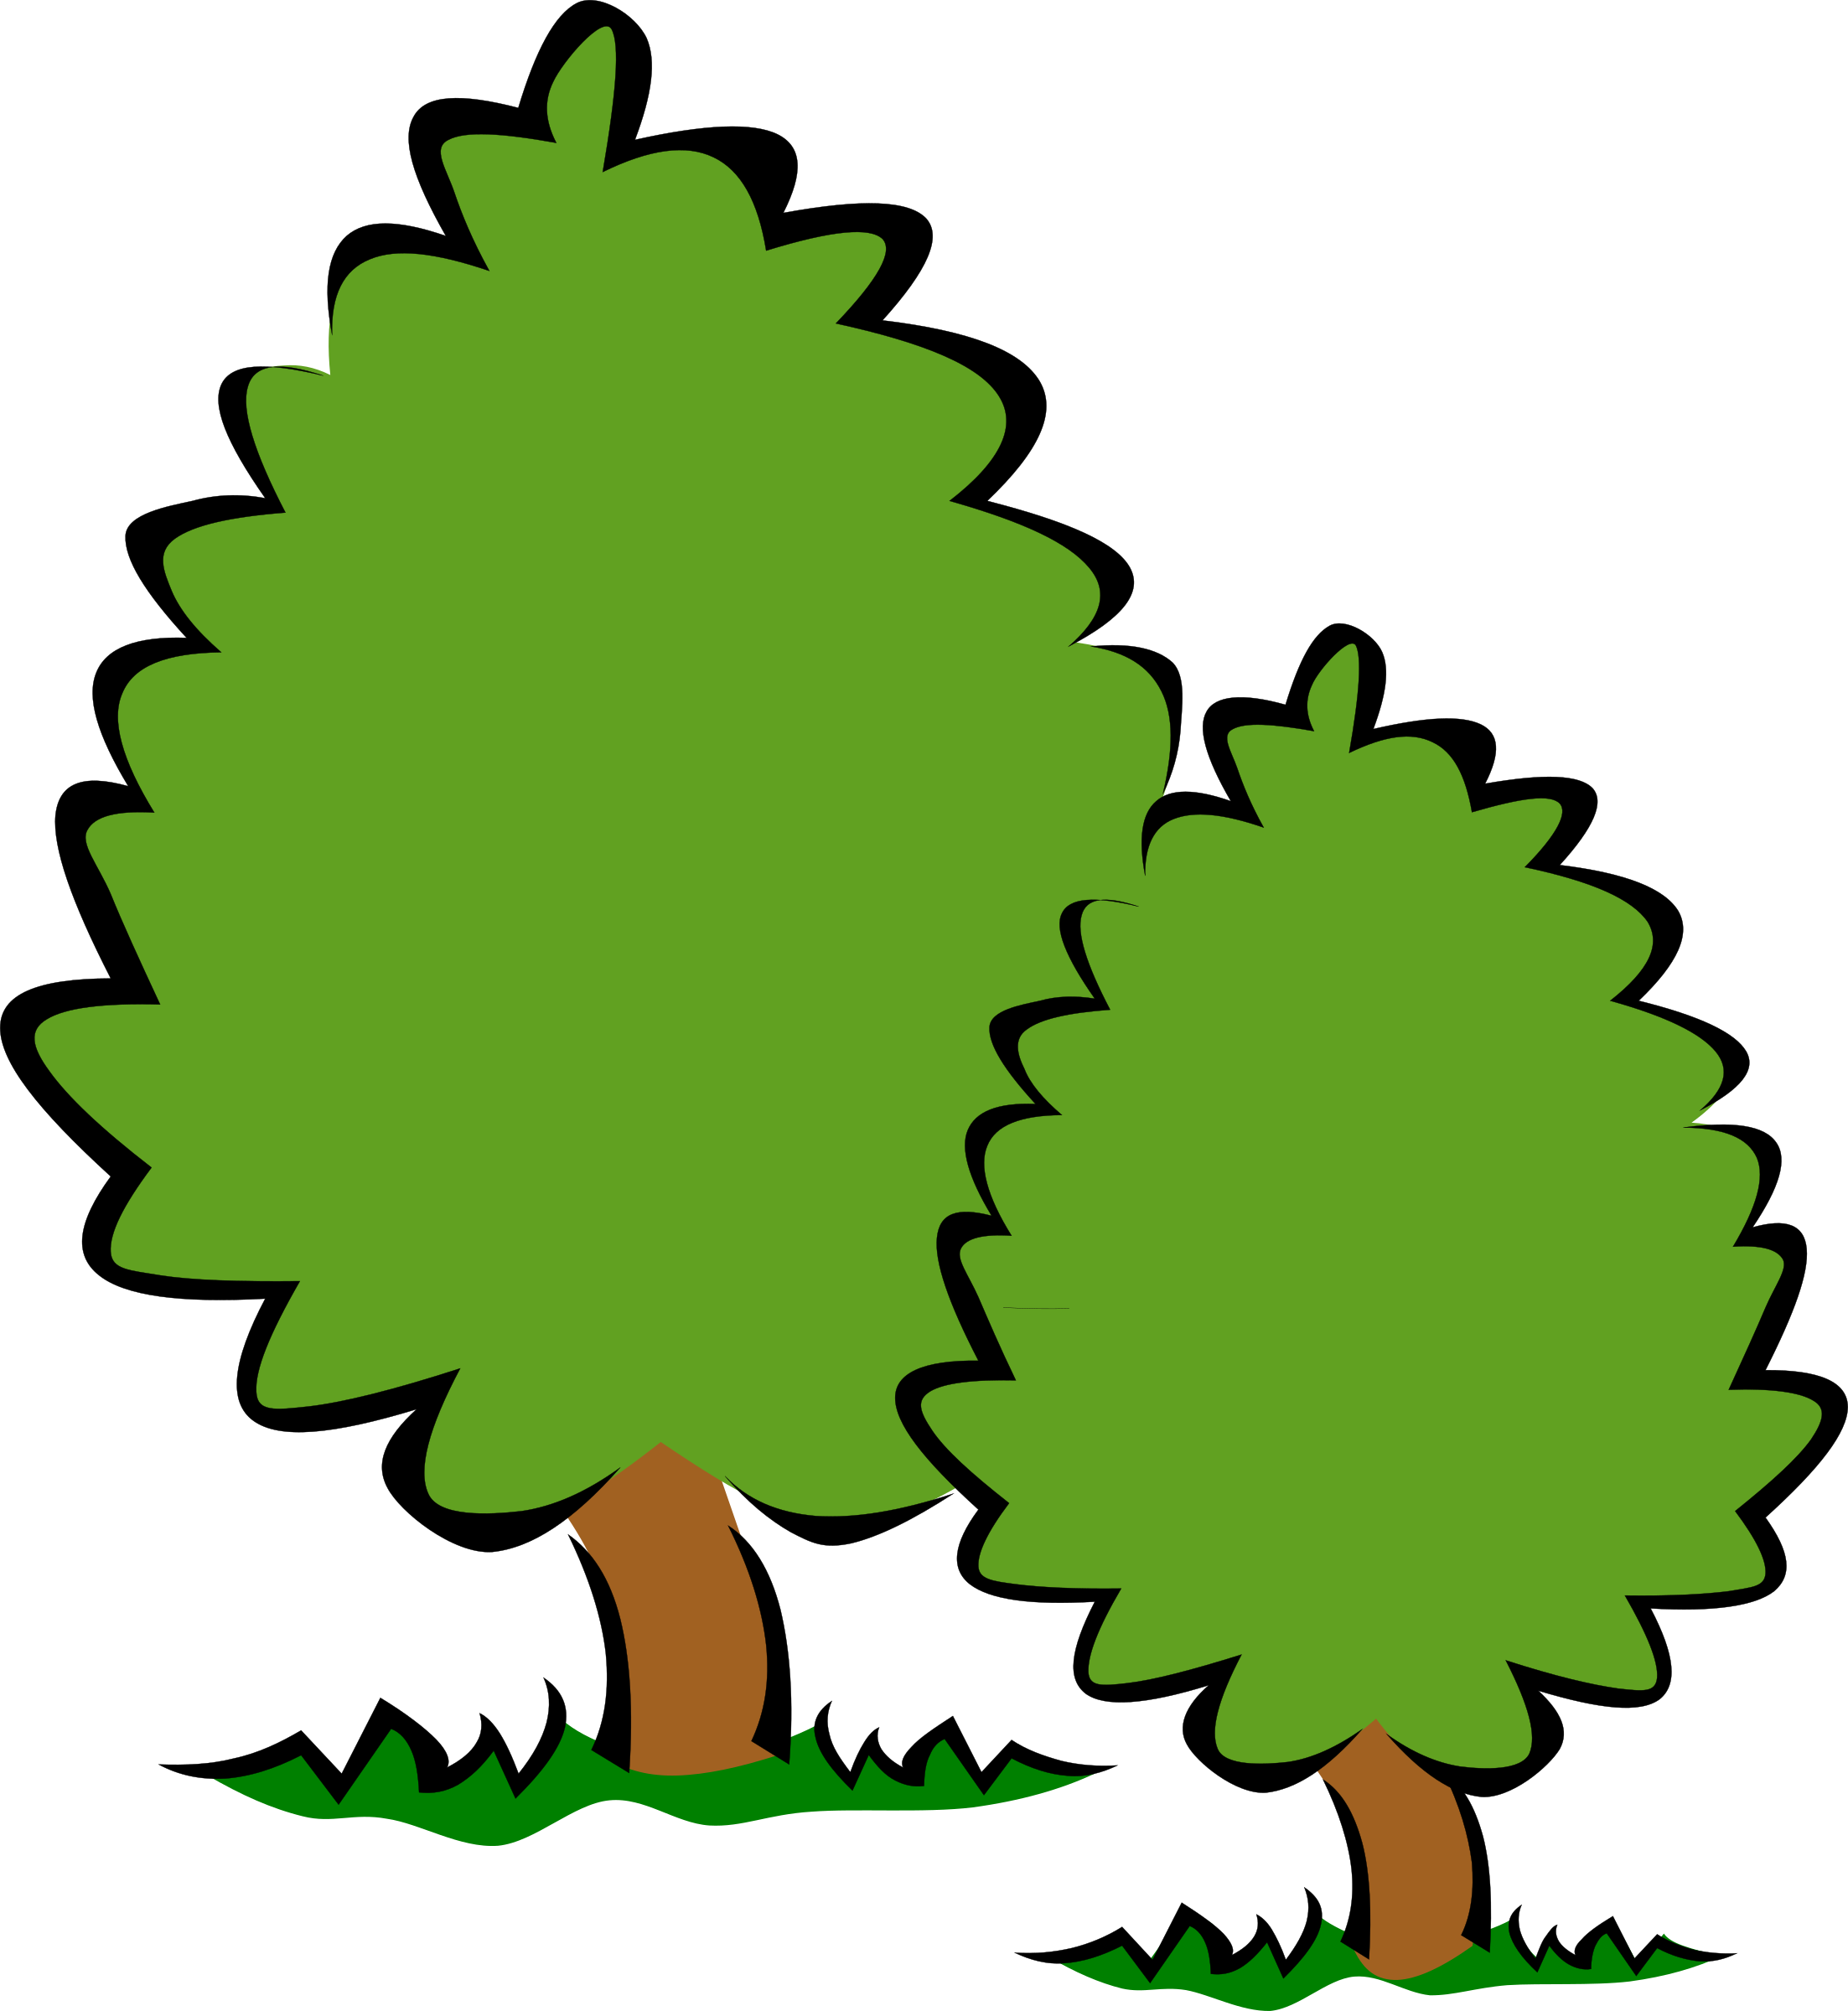 Shade tree clipart graphic black and white Clipart - Small Trees / Bushes graphic black and white